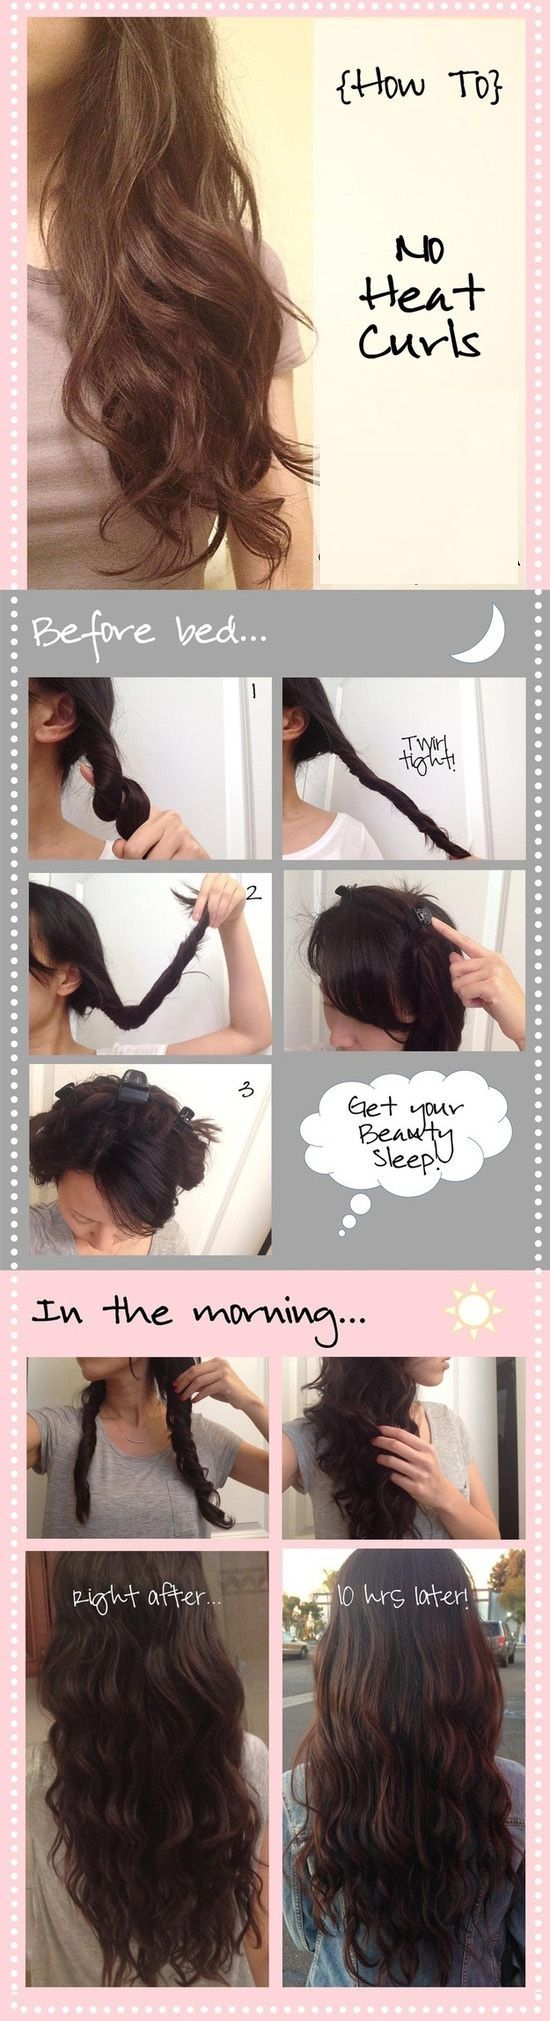 How to Get Natural Curls - Tutorial- I dont know about the clips in your hair while you sleep tho.. unless you sleep without moving at all..